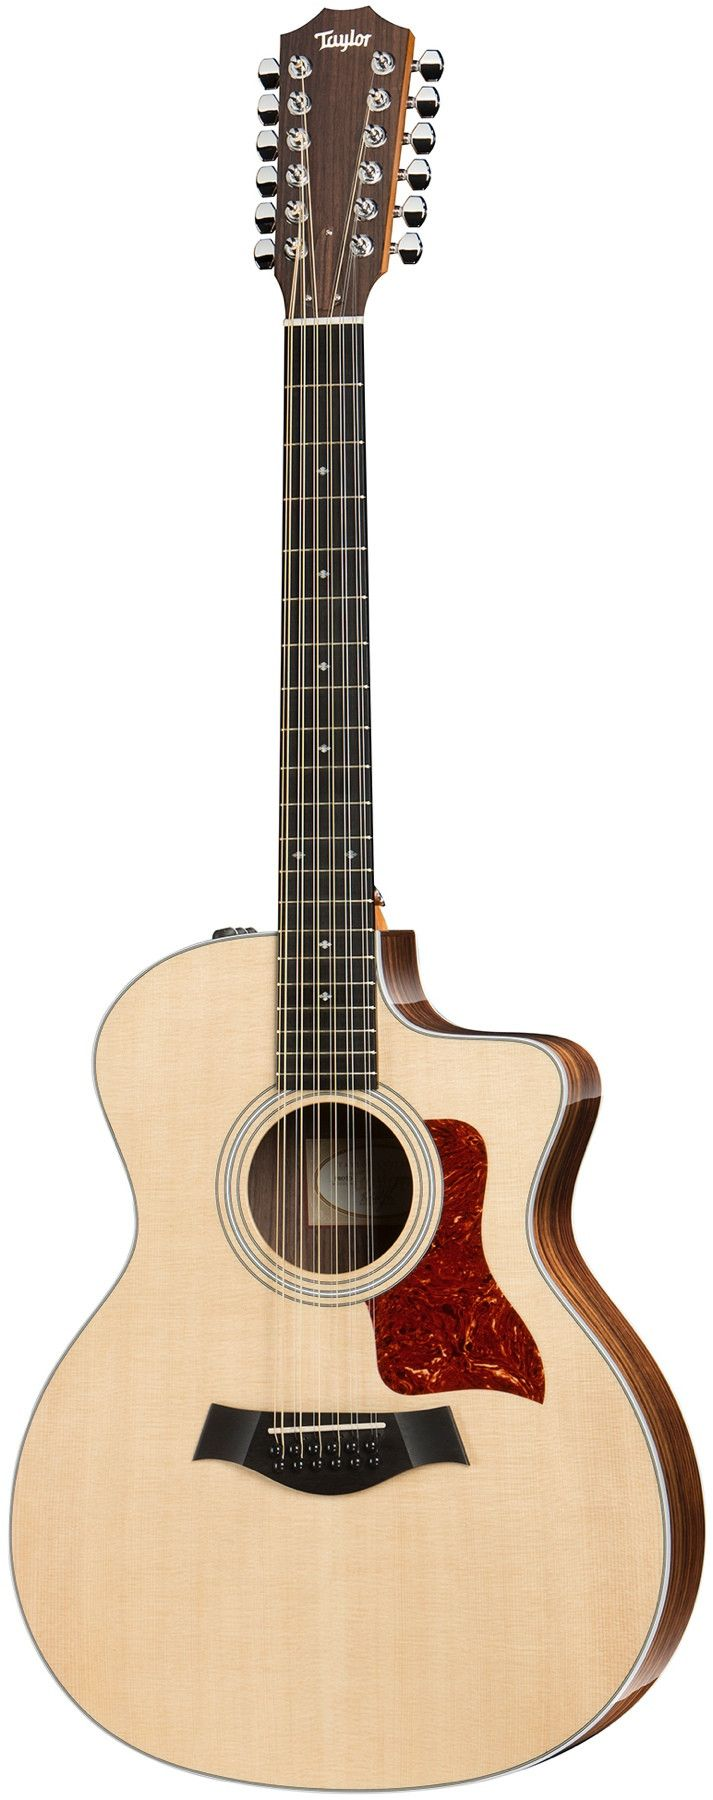 A Great Foundational 12-String Taylor's 254ce DLX is a great option for someone looking to get into playing a 12-string. Layered sides and back make for a durable instrument, while adding resistance t